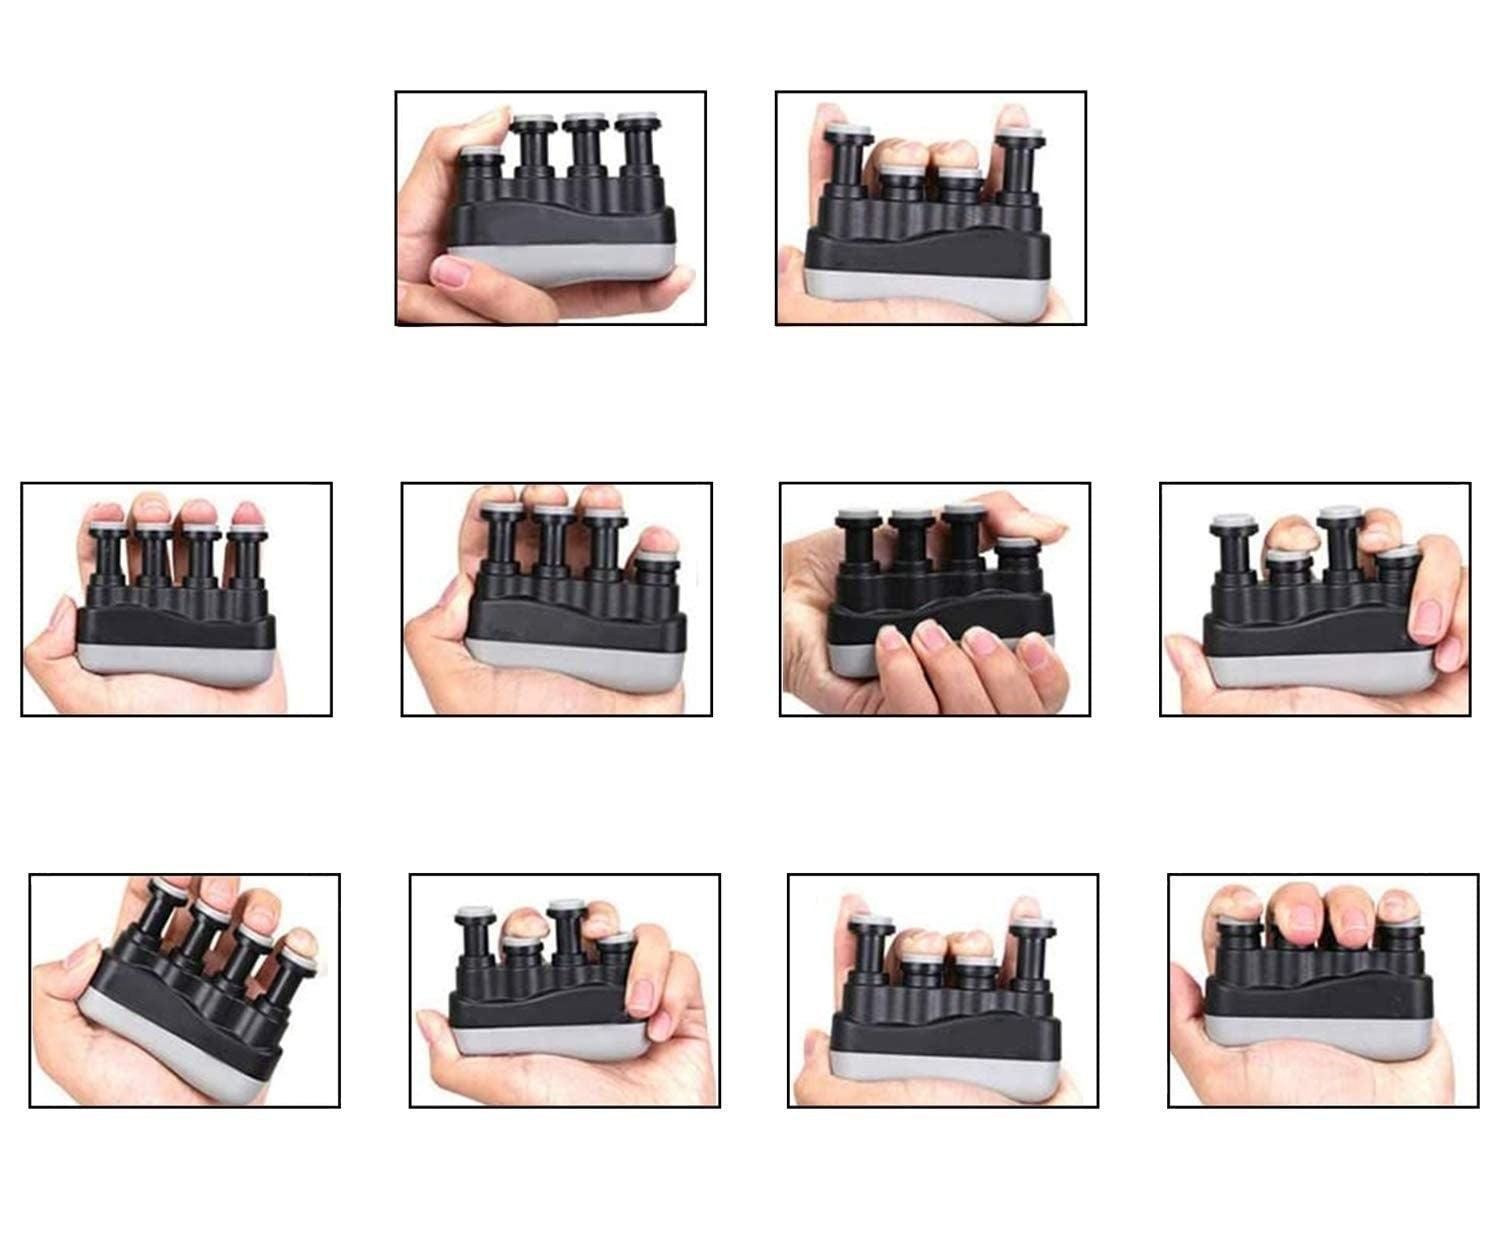 Collage of a hand pressing down on the buttons on the hand grip.